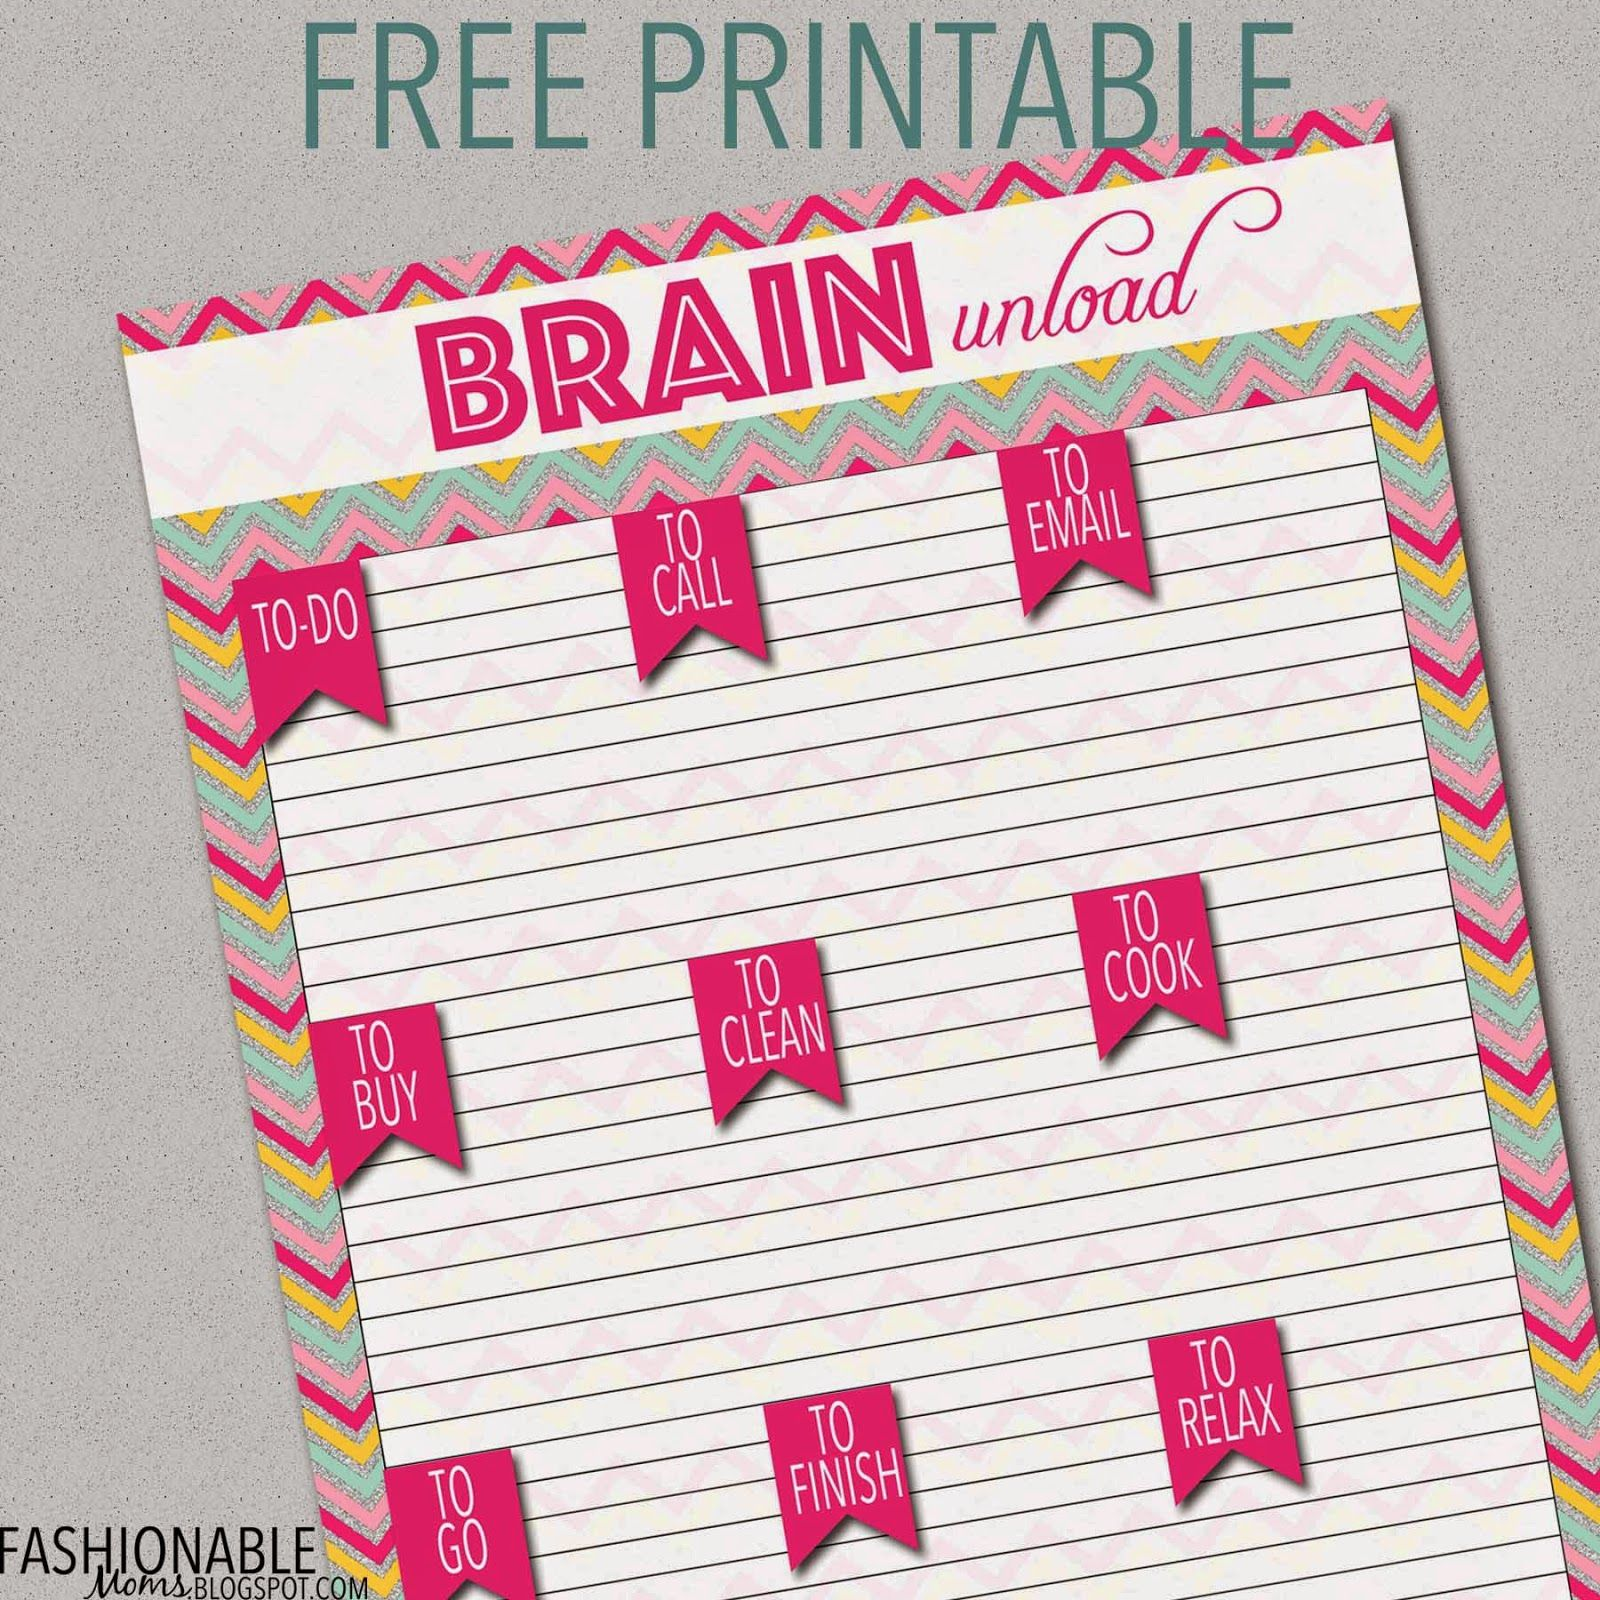 Free Printable: Brain Unload! From Fashionable Mom's Blog